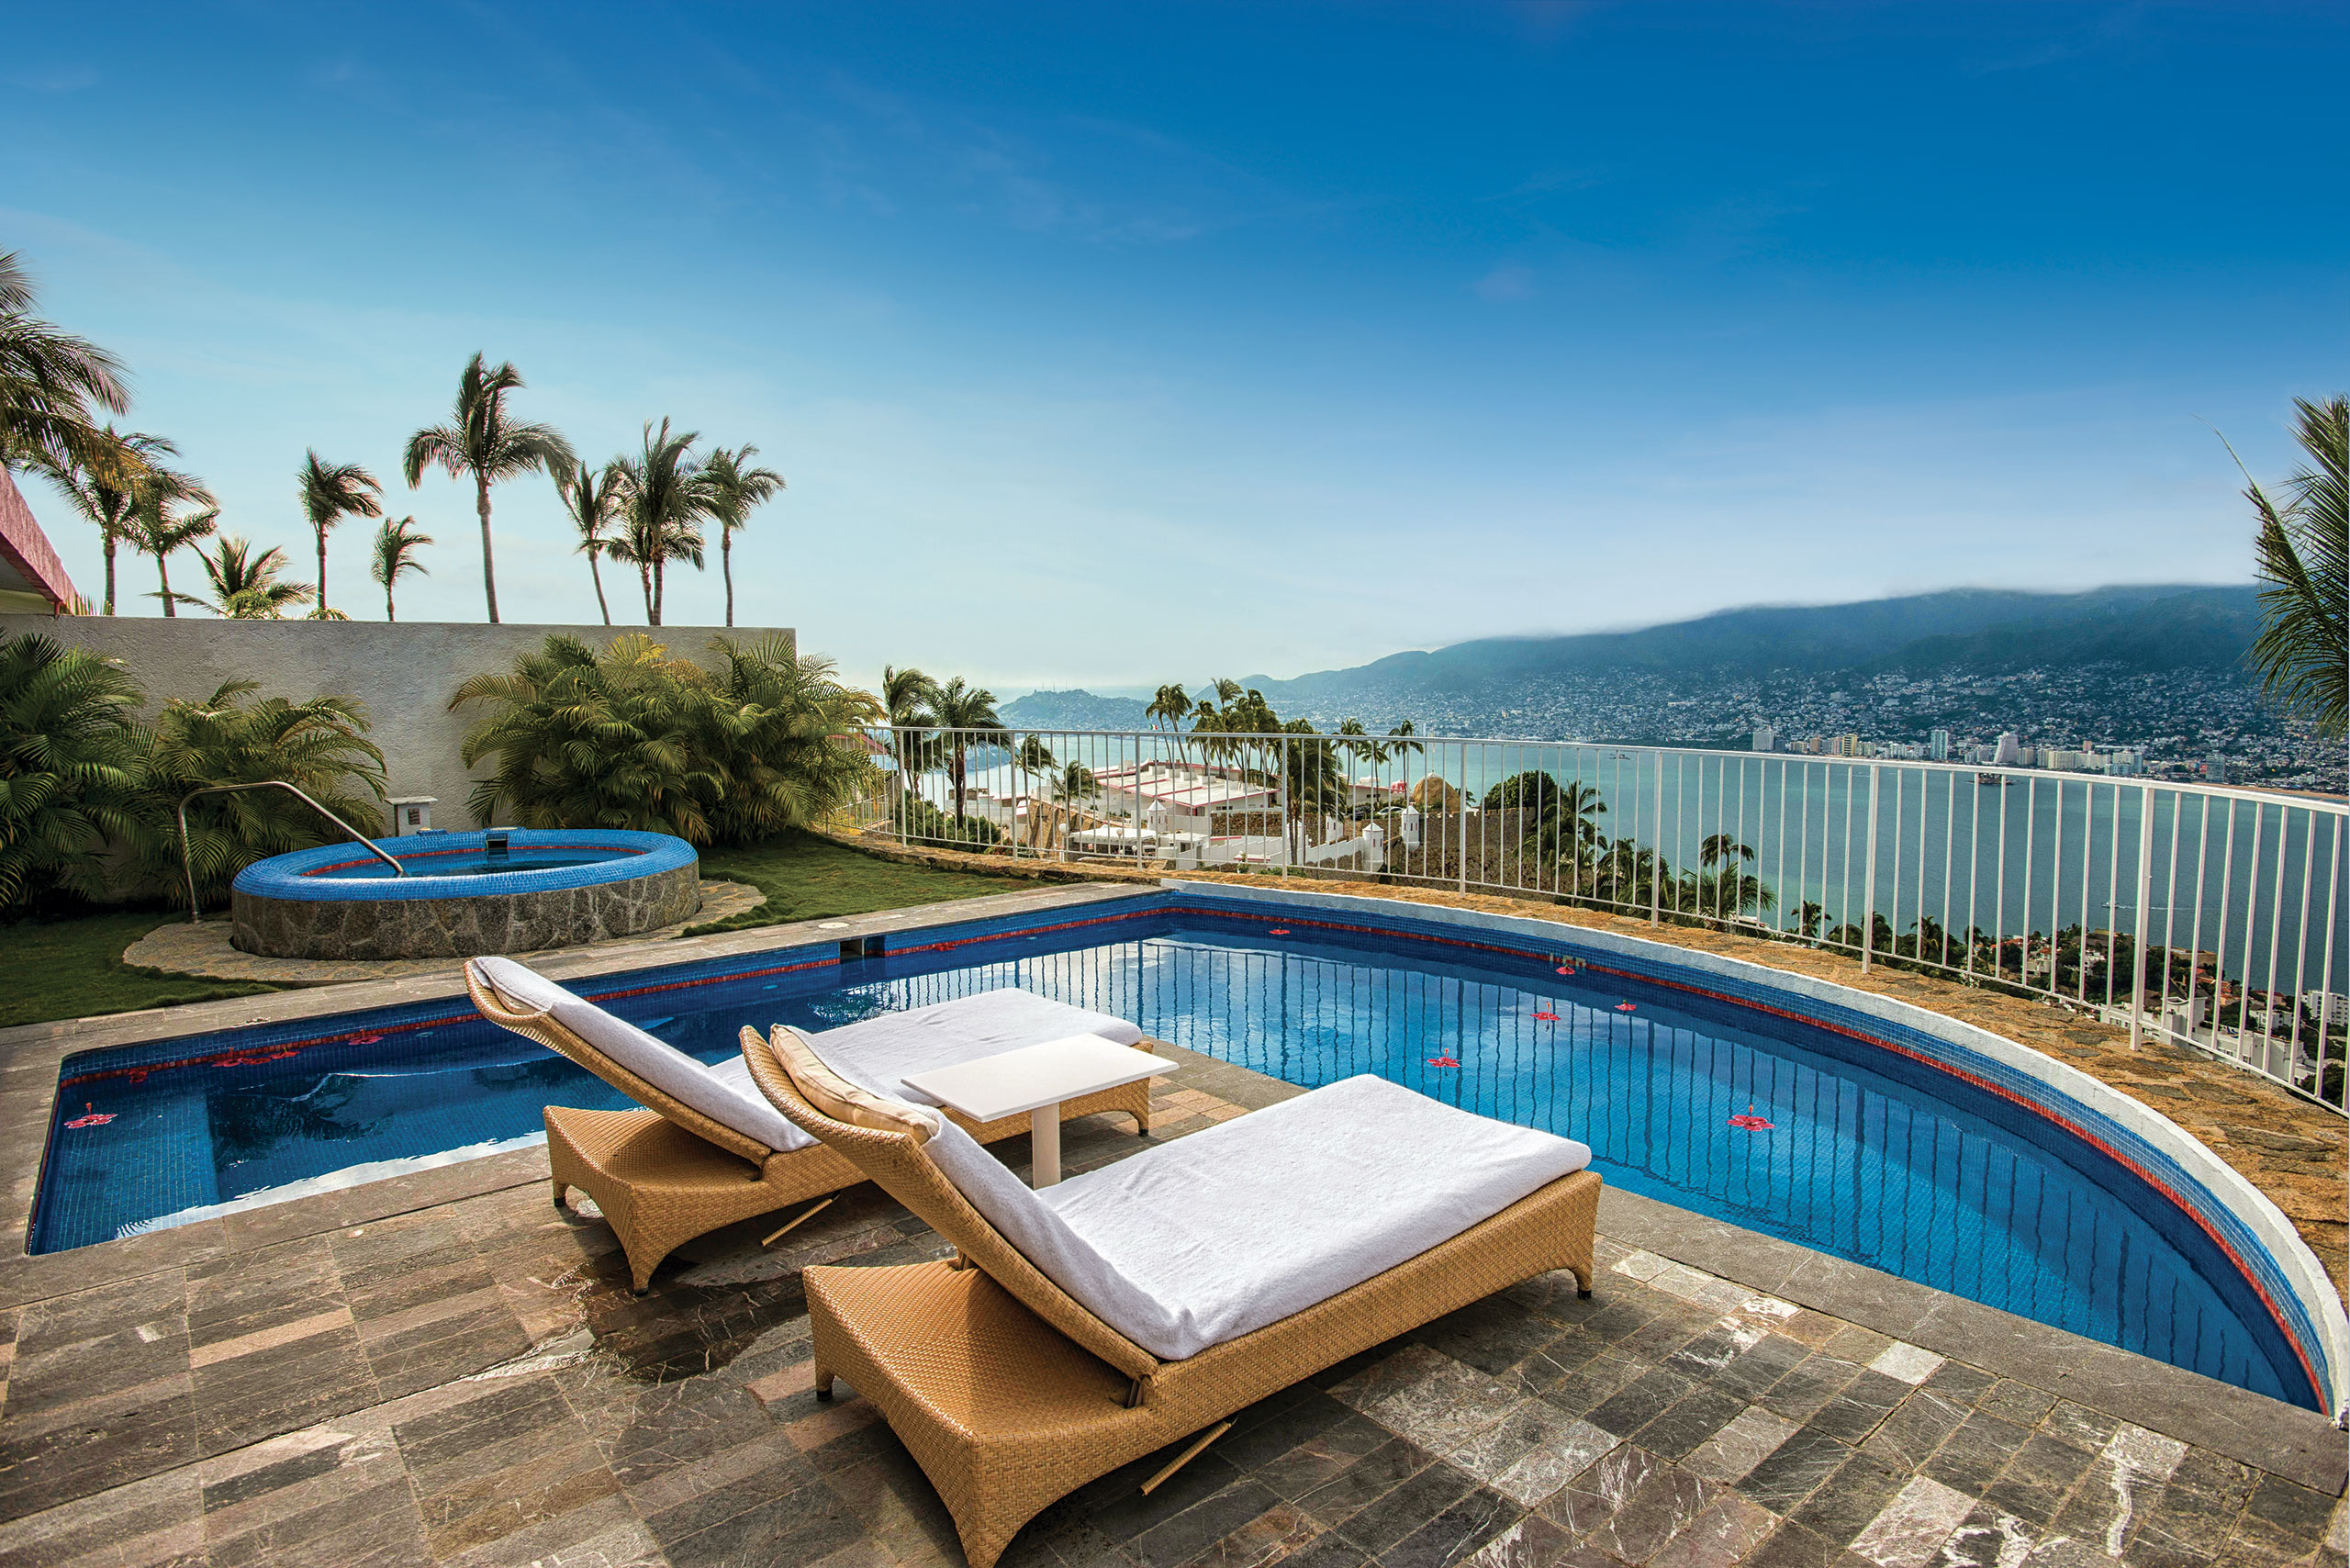 Hotel Las Brisas Acapulco Master Suite with Jacuzzi outdoor pool